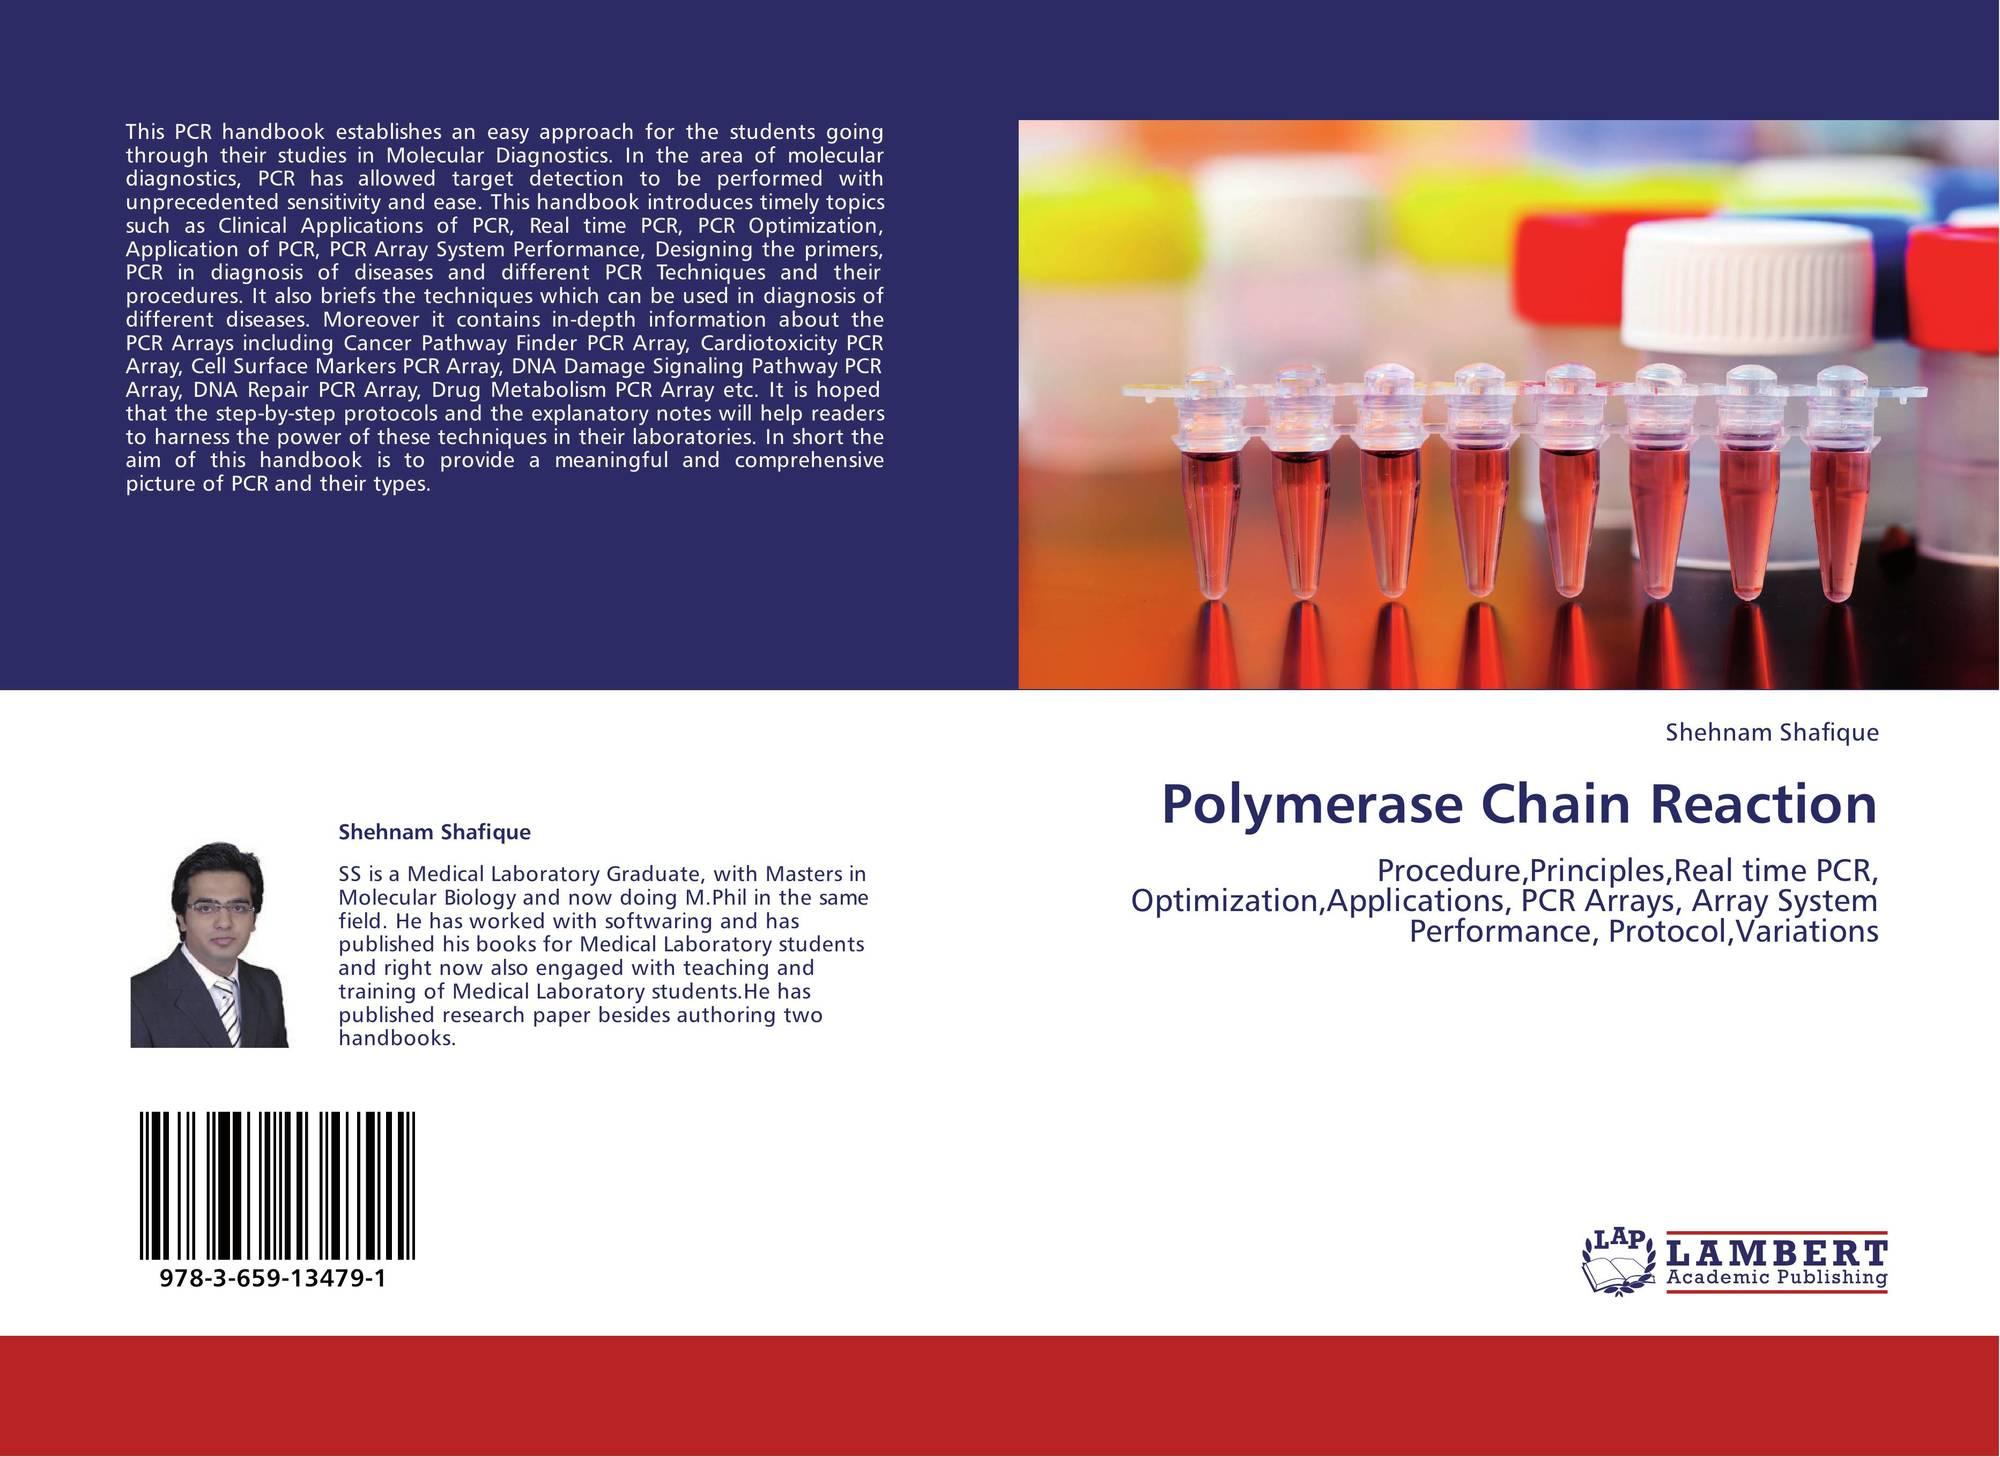 Polymerase Chain Reaction, 978-3-659-13479-1, 3659134791